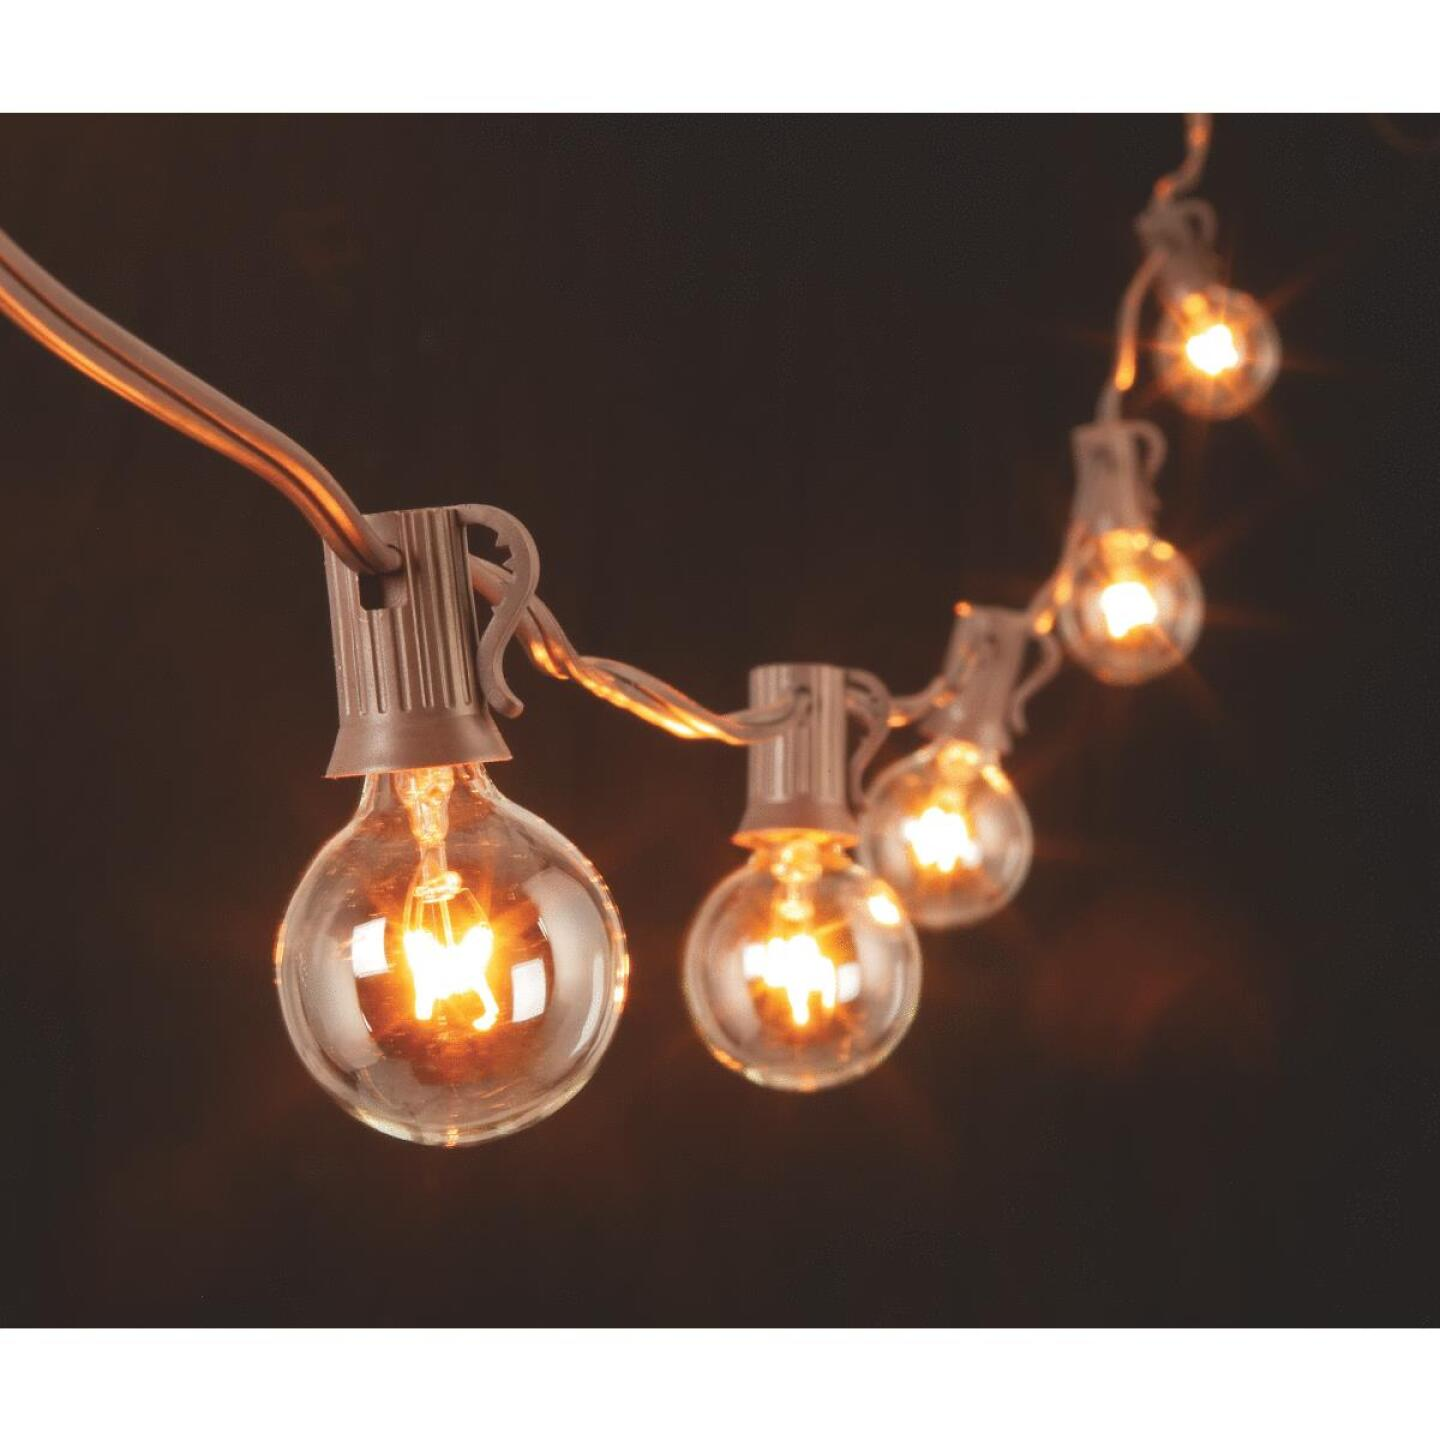 Gerson 20 Ft. 20-Light Clear Bulb String Lights Image 4